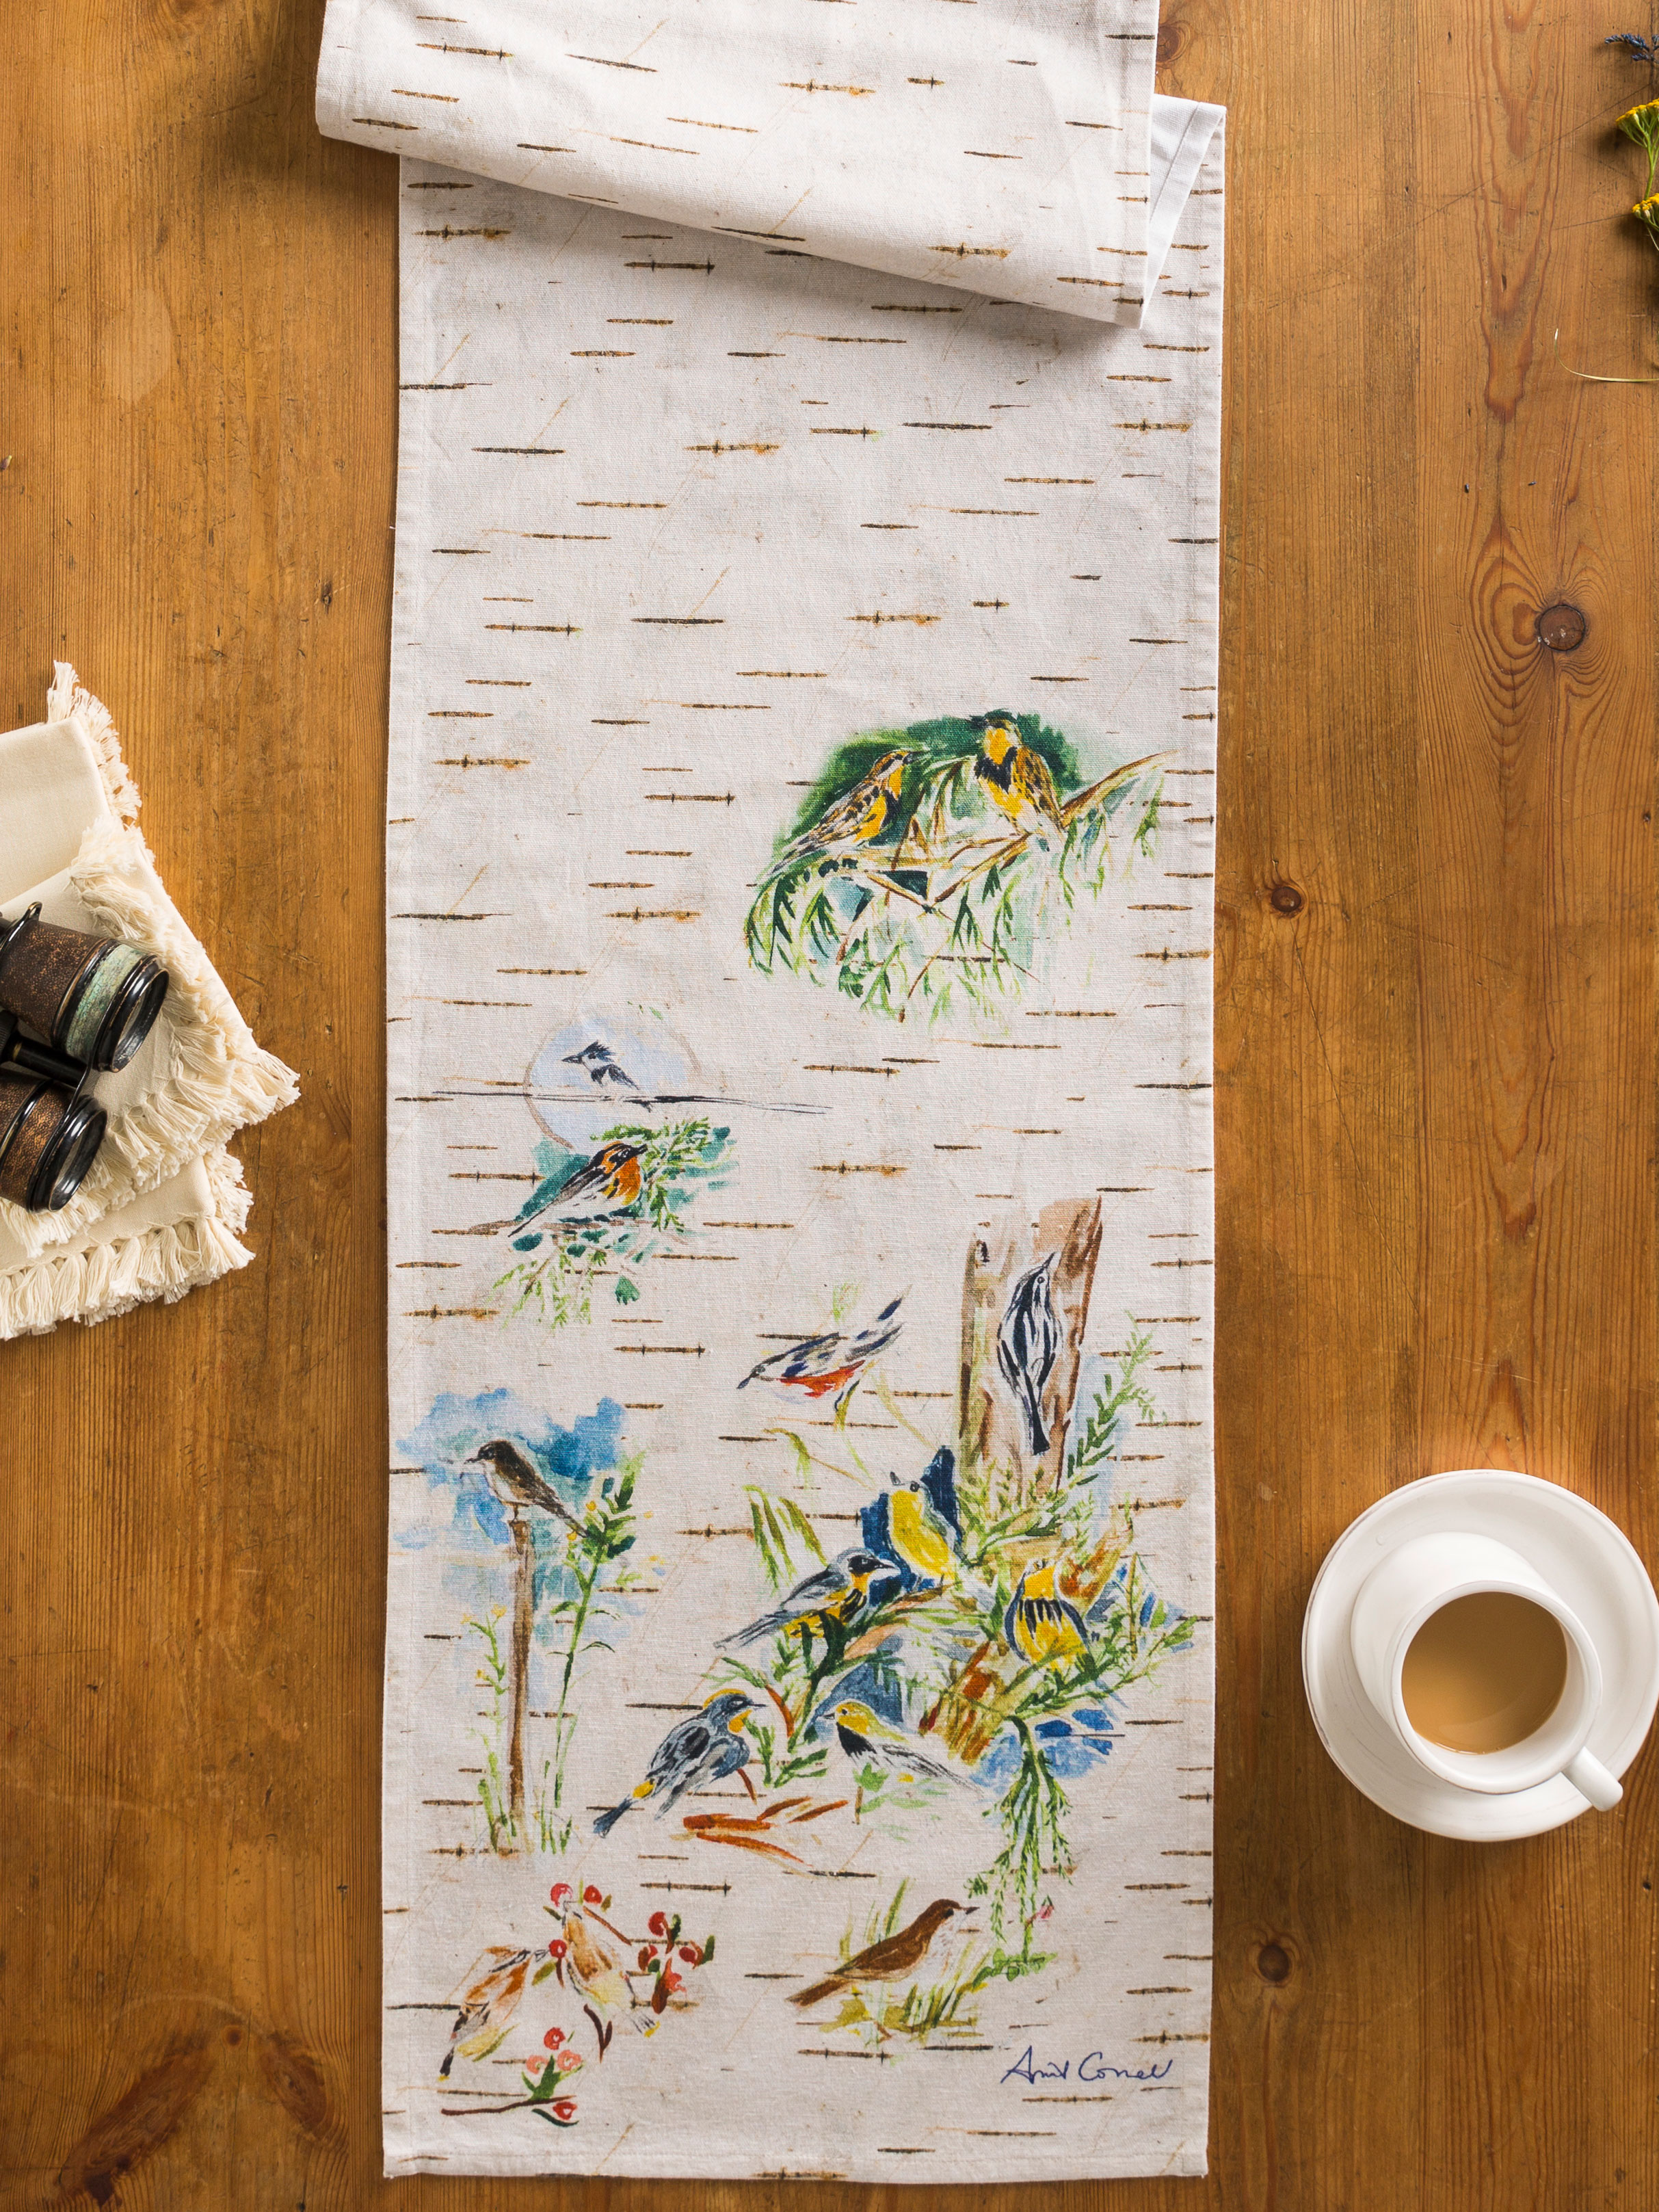 Superbe Boreal Birch Birds Table Runner